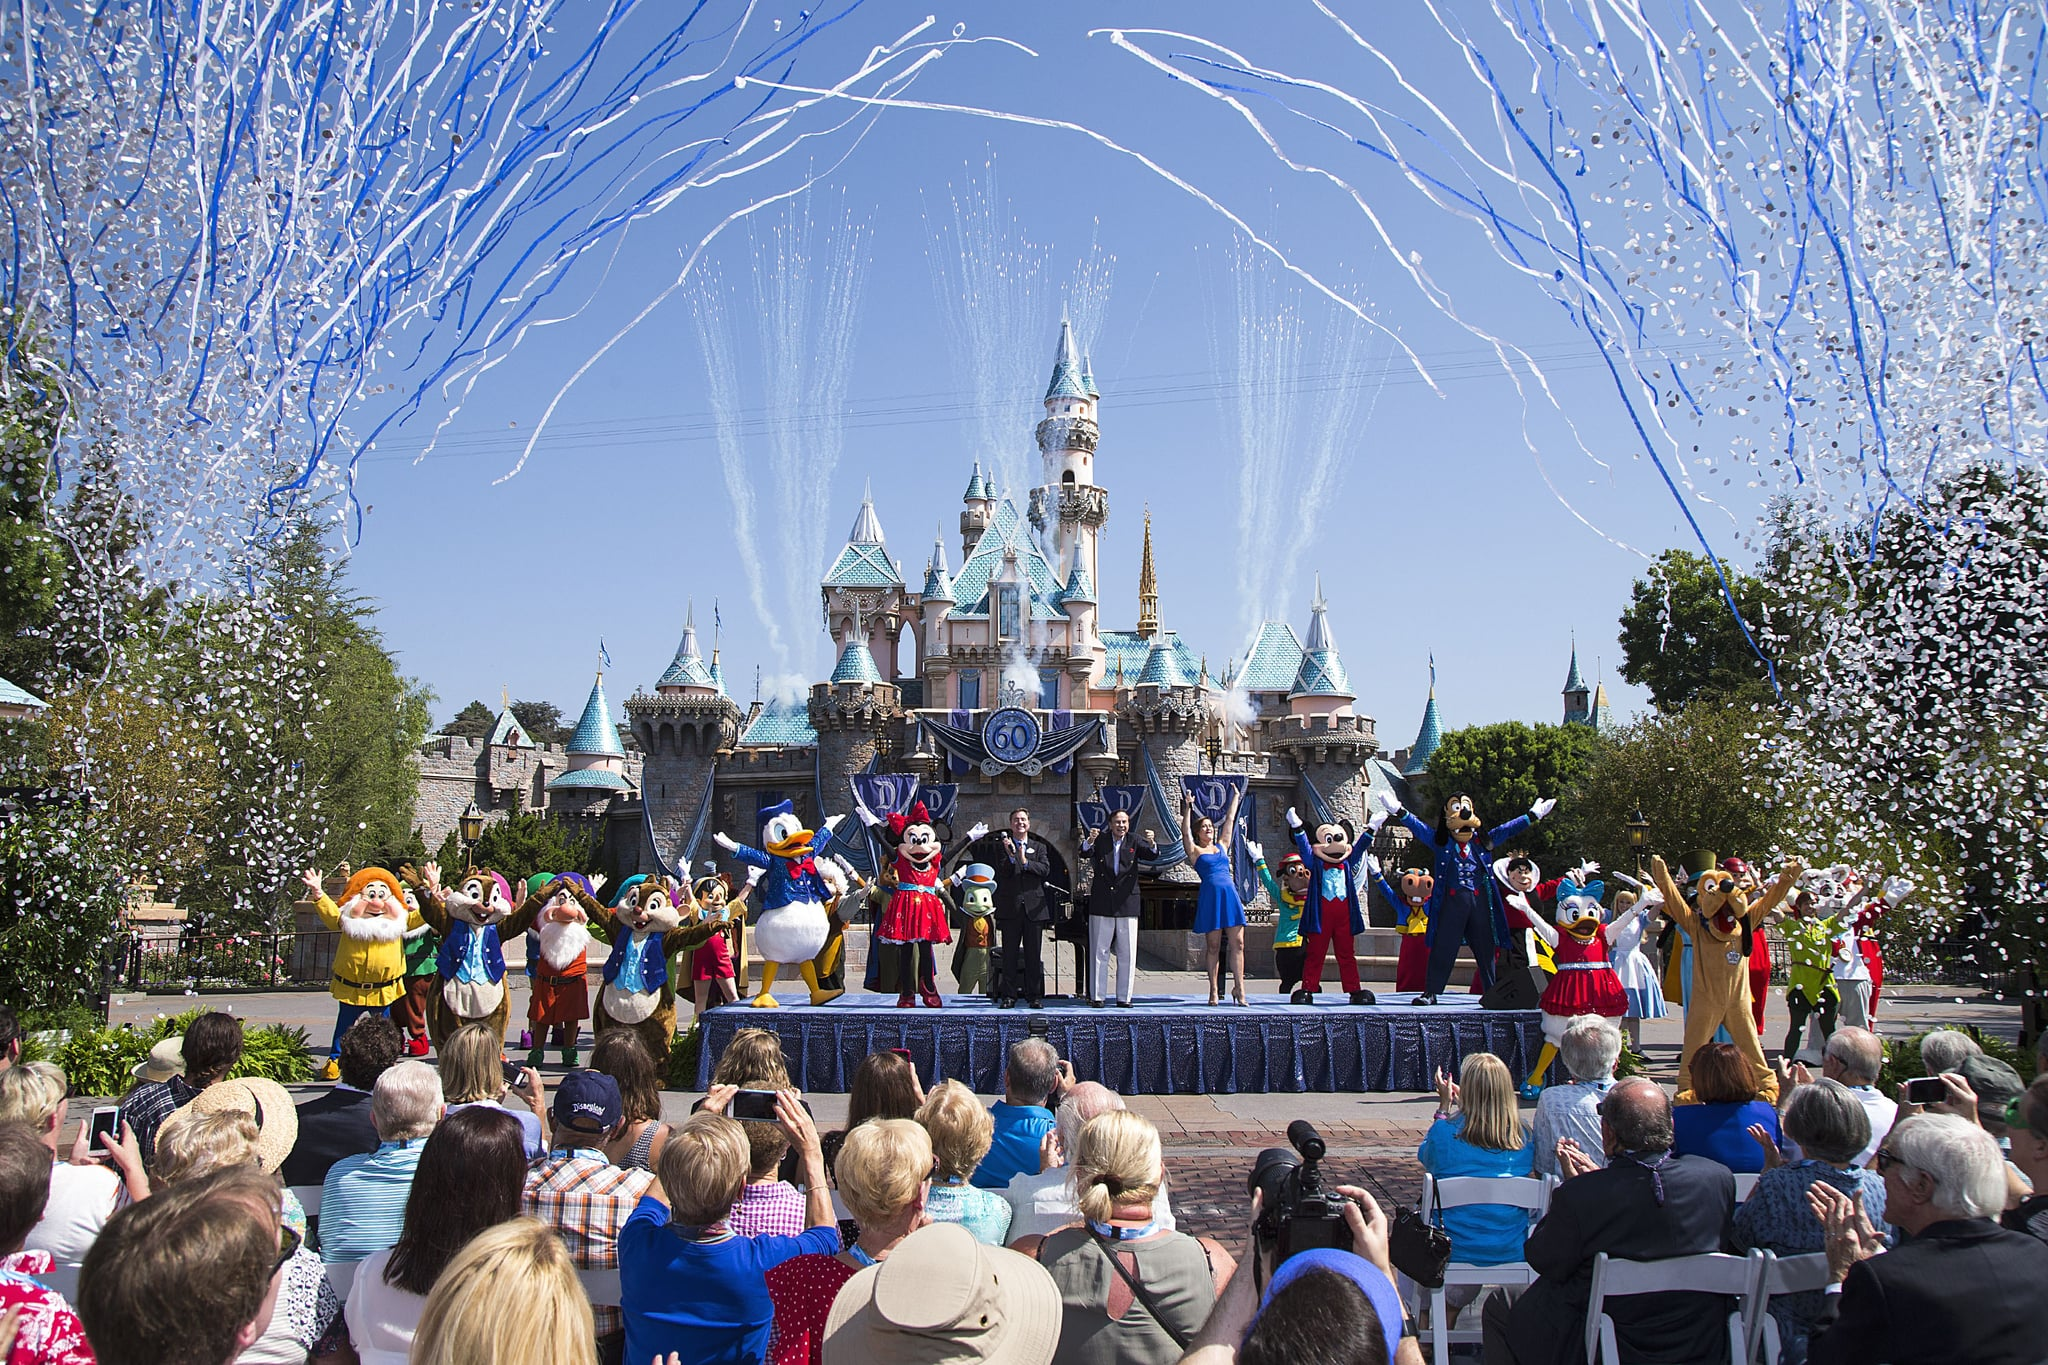 ANAHEIM, CA - JULY 17:  In this handout photo provided by Disney parks, Mickey Mouse and his friends celebrate the 60th anniversary of Disneyland park during a ceremony at Sleeping Beauty Castle featuring Academy Award-winning composer, Richard Sherman and Broadway actress and singer Ashley Brown July 17, 2015 in Anaheim, California.  Celebrating six decades of magic, the Disneyland Resort Diamond Celebration features three new nighttime spectaculars that immerse guests in the worlds of Disney stories like never before with